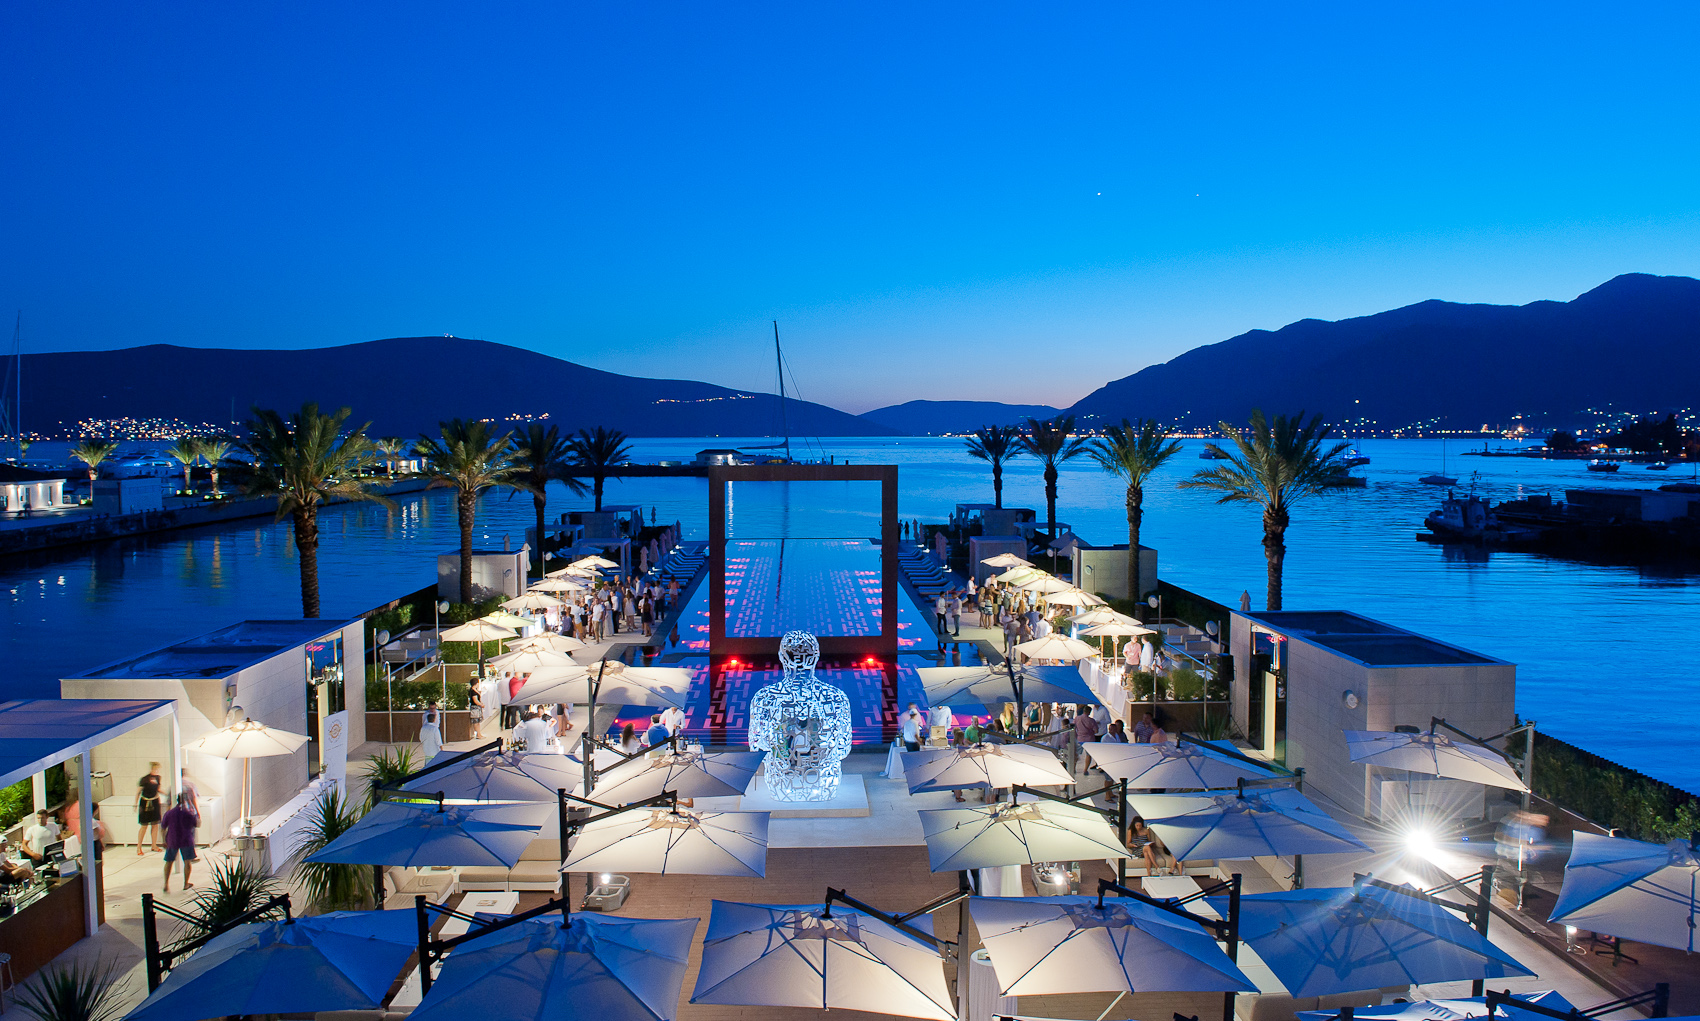 ootd-fashion-world-beach-bars-purobeach-tivat-montenegro-04